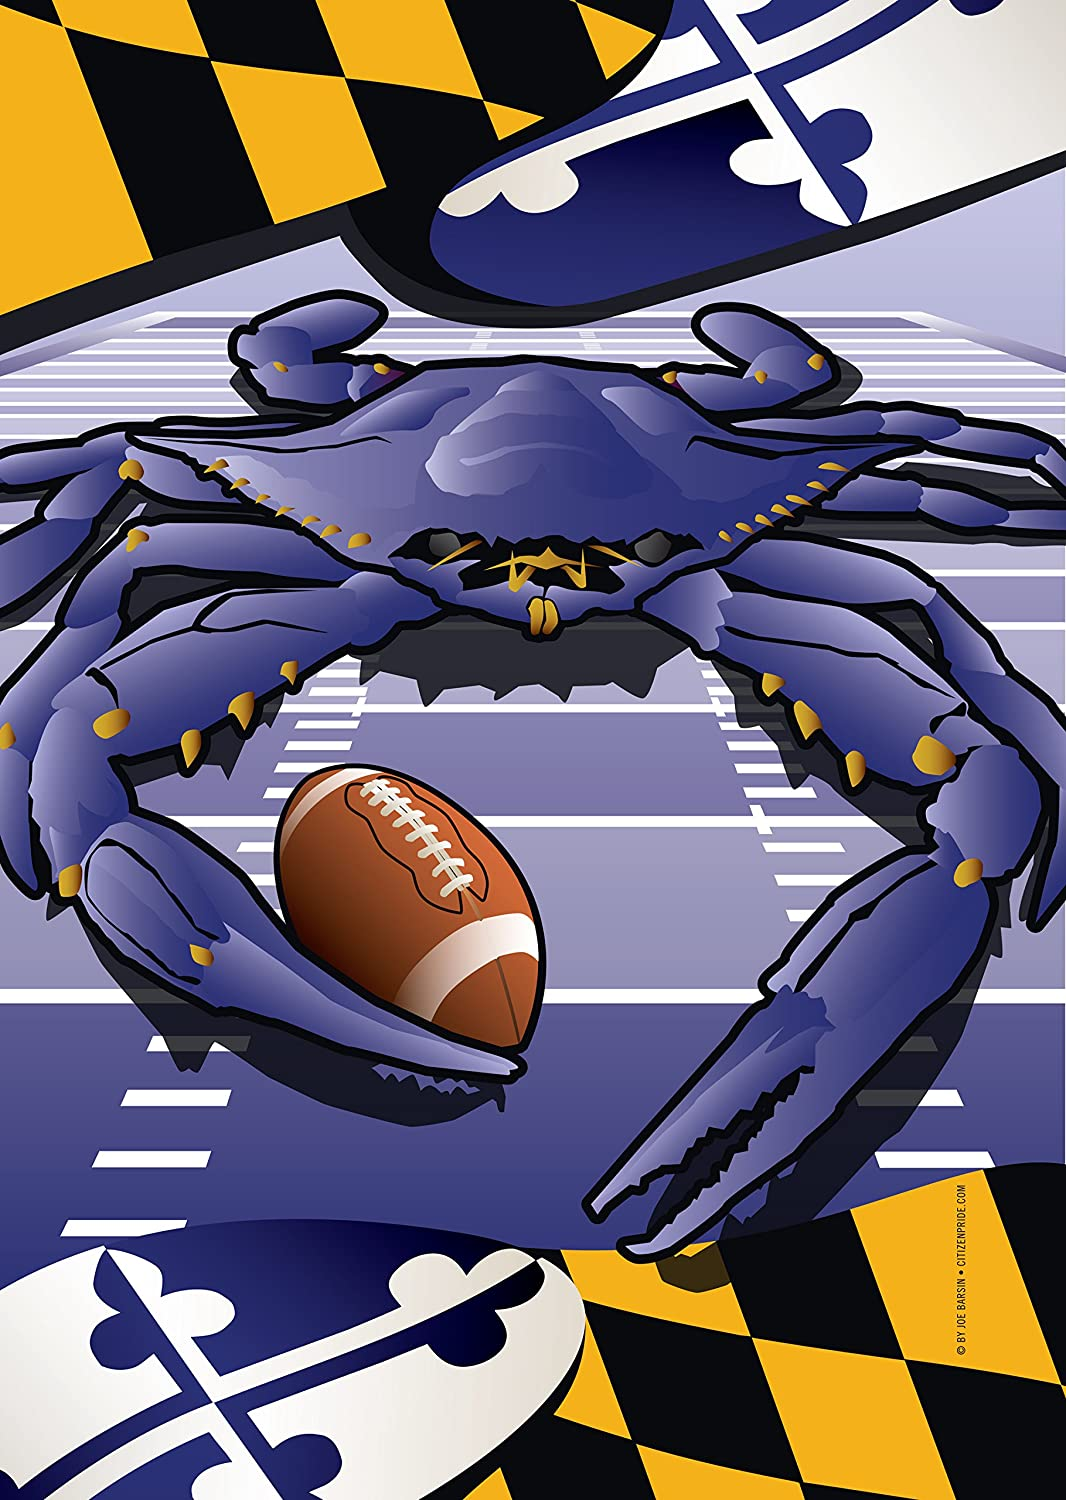 Ravens Sports Crab of Baltimore House Flag by Joe Barsin 28 x 40-Inch Decorative USA-Produced